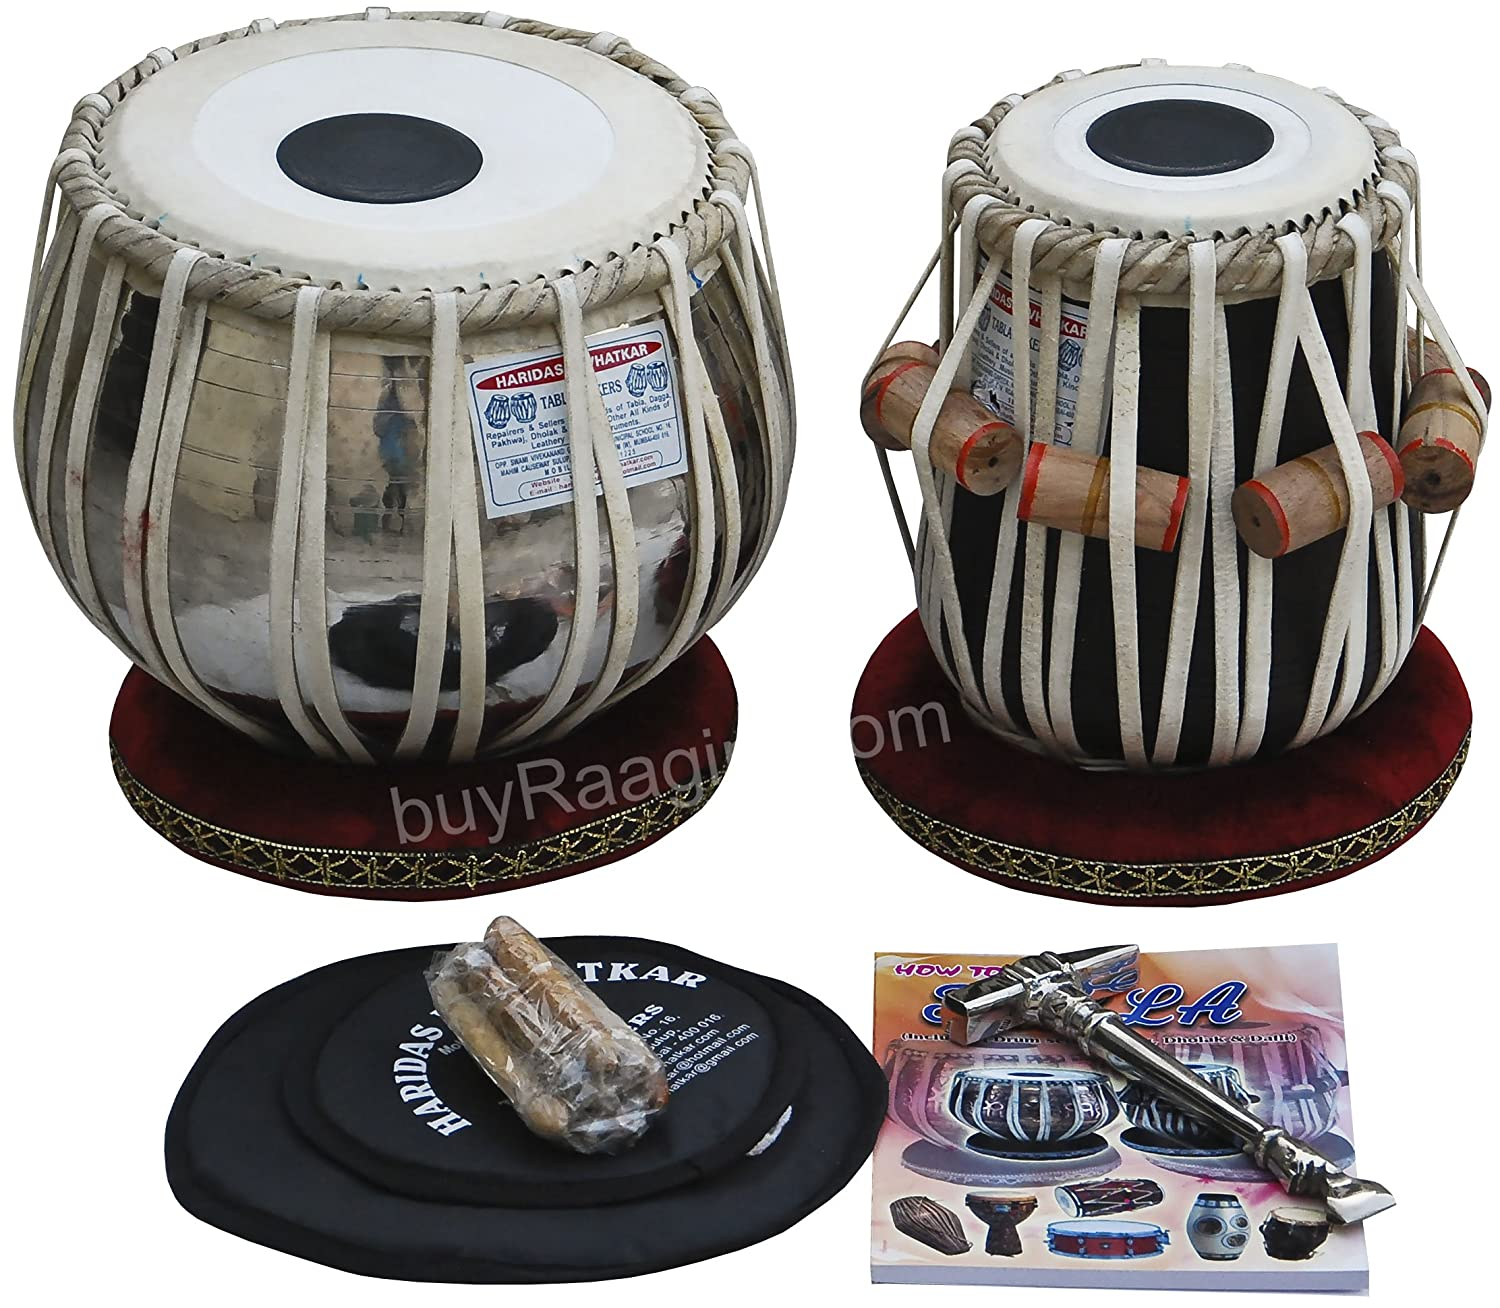 No. 1 Tabla Drum Set by Haridas Vhatkar, In USA, 3.5KG Chromed Copper Bayan, Finest Sheesham Dayan - Tuneable To C Sharp, Padded Bag, Book, Hammer, Cushions & Cover, Tabla Instrument India (PDI-ECH) buyRaagini.com